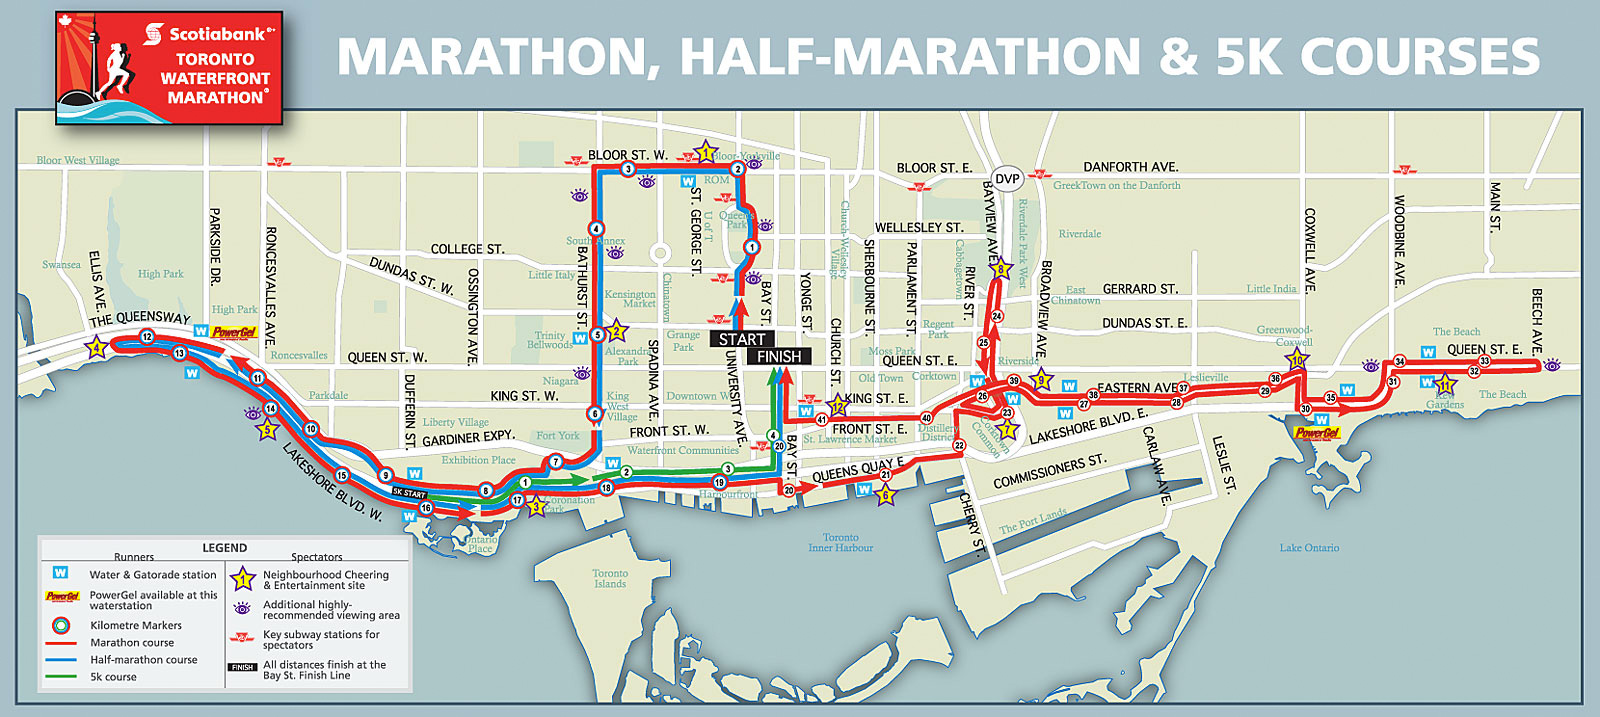 Toronto waterfront marathon course